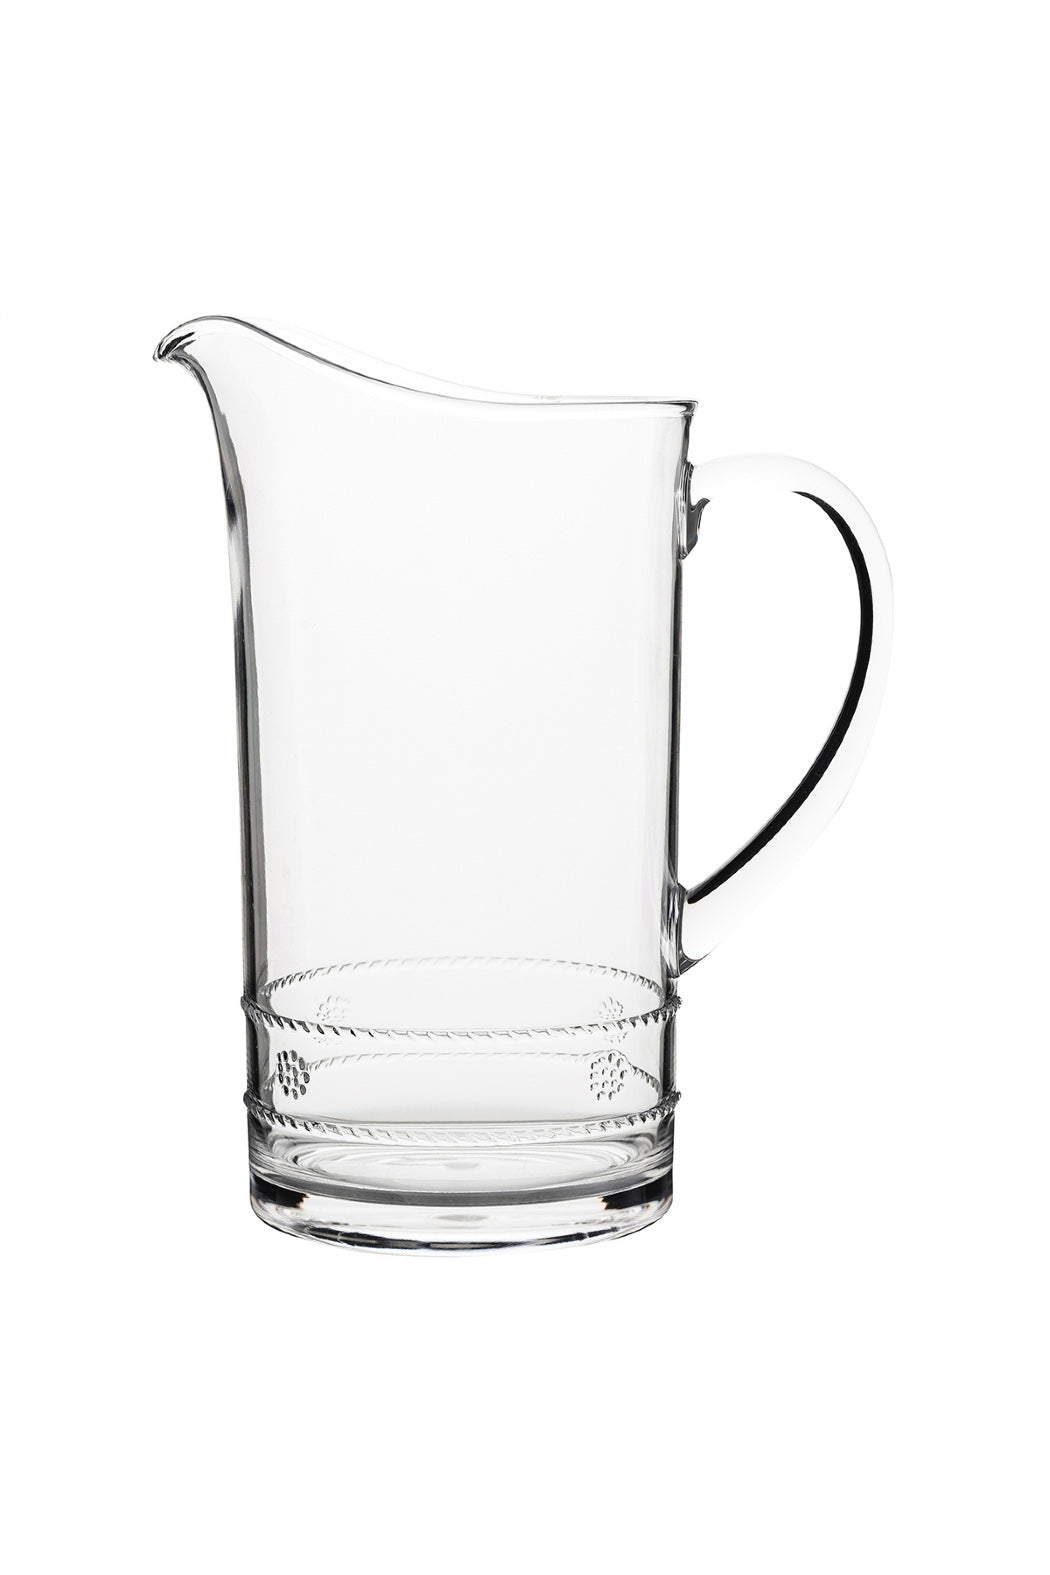 Juliska Isabella Acrylic Pitcher For Olivia & Jacob